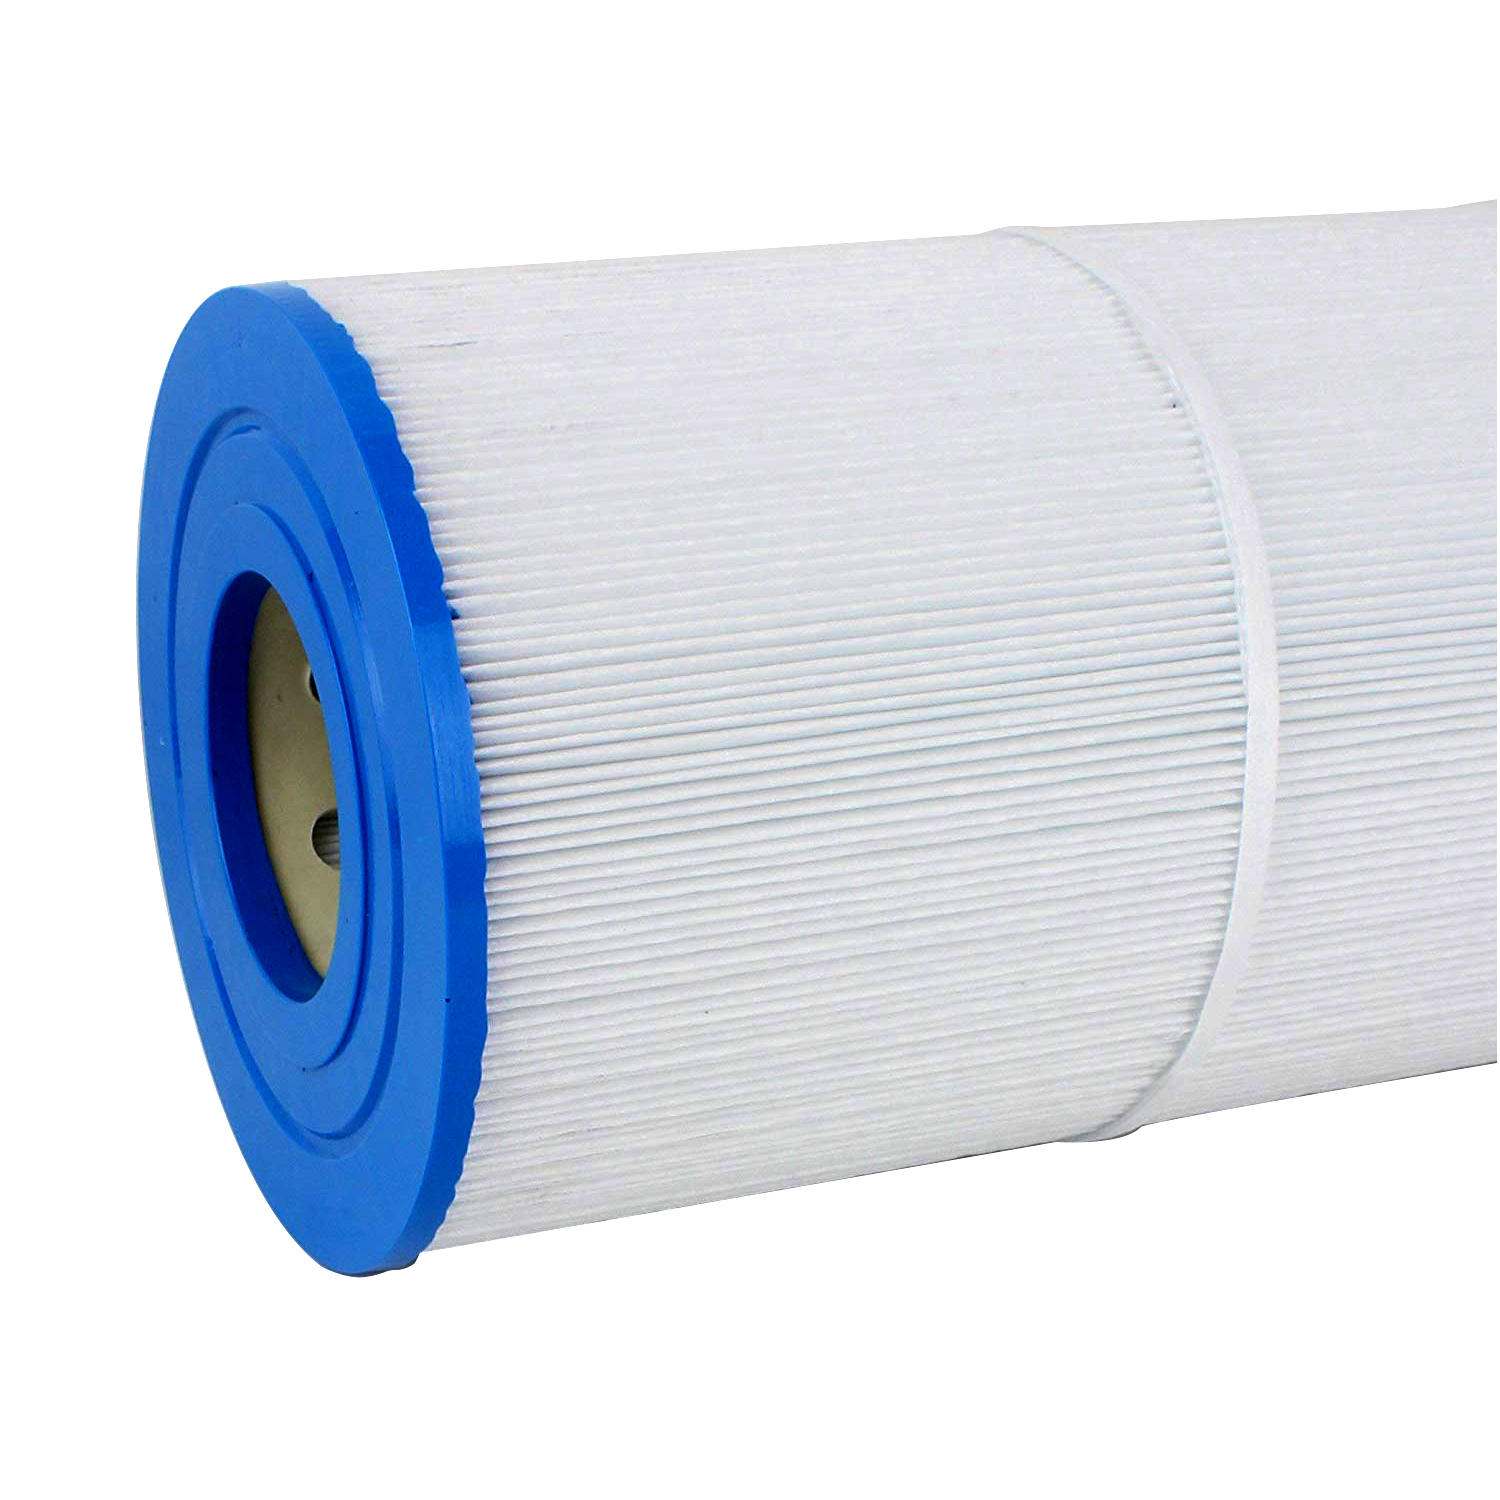 China Manufacturer for Industrial Water Filter -